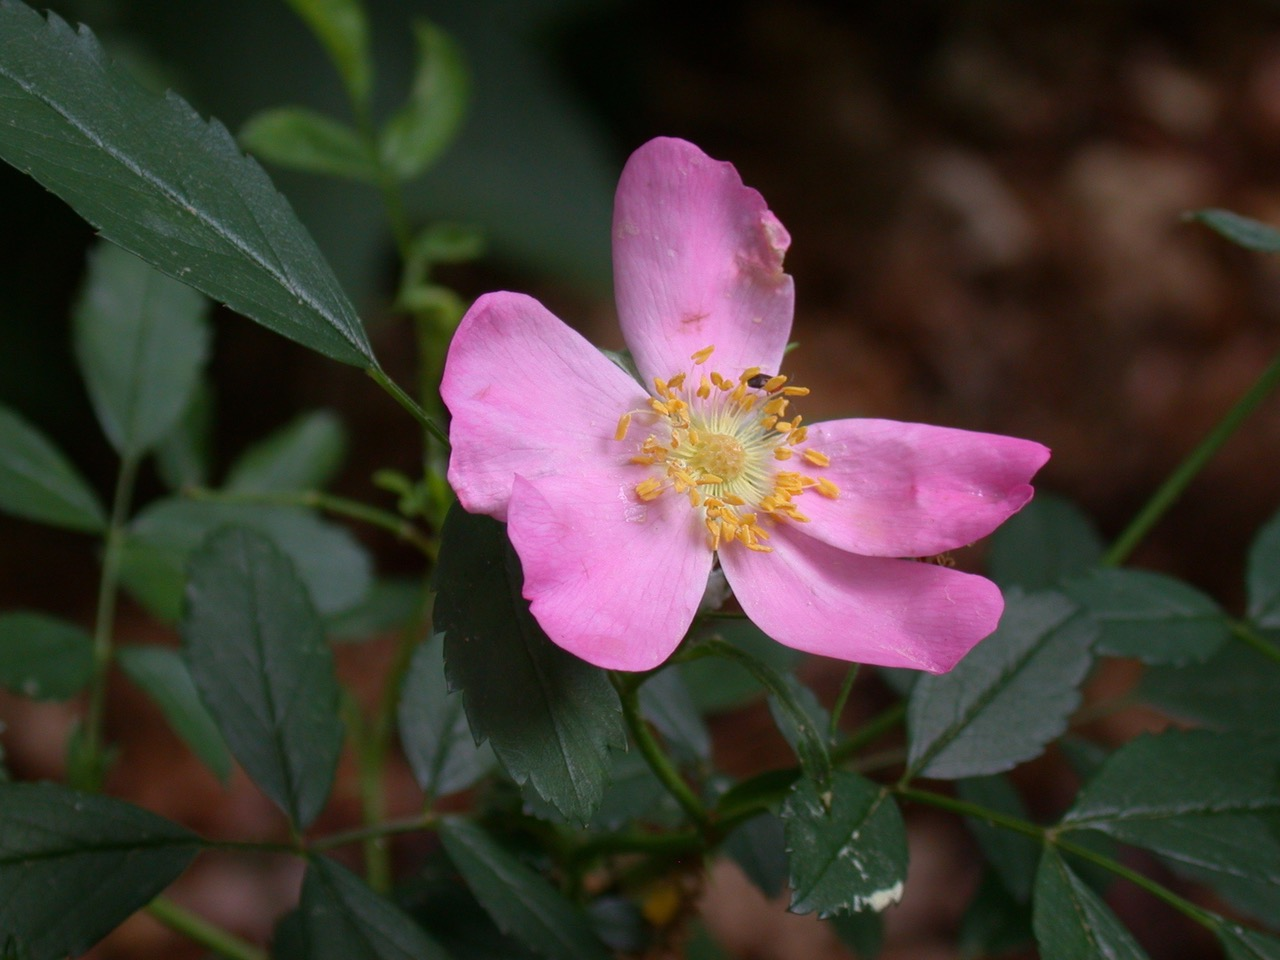 The Scientific Name is Rosa carolina. You will likely hear them called Carolina Rose. This picture shows the Flower of Rosa carolina